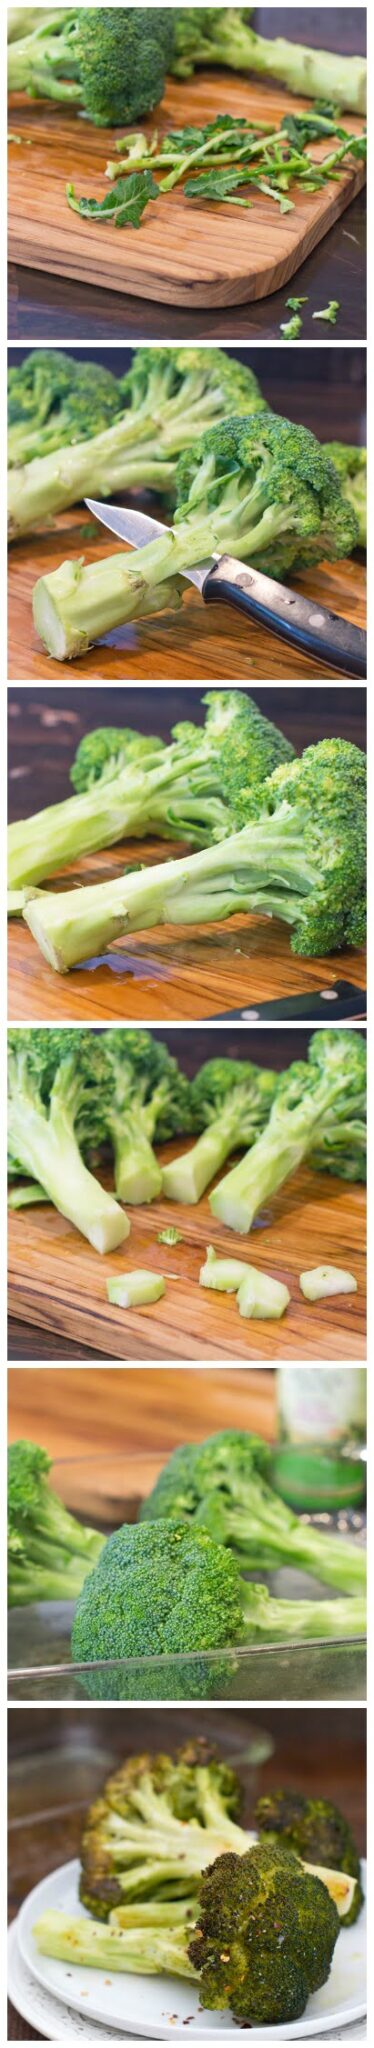 How to peel broccoli to roast it whole